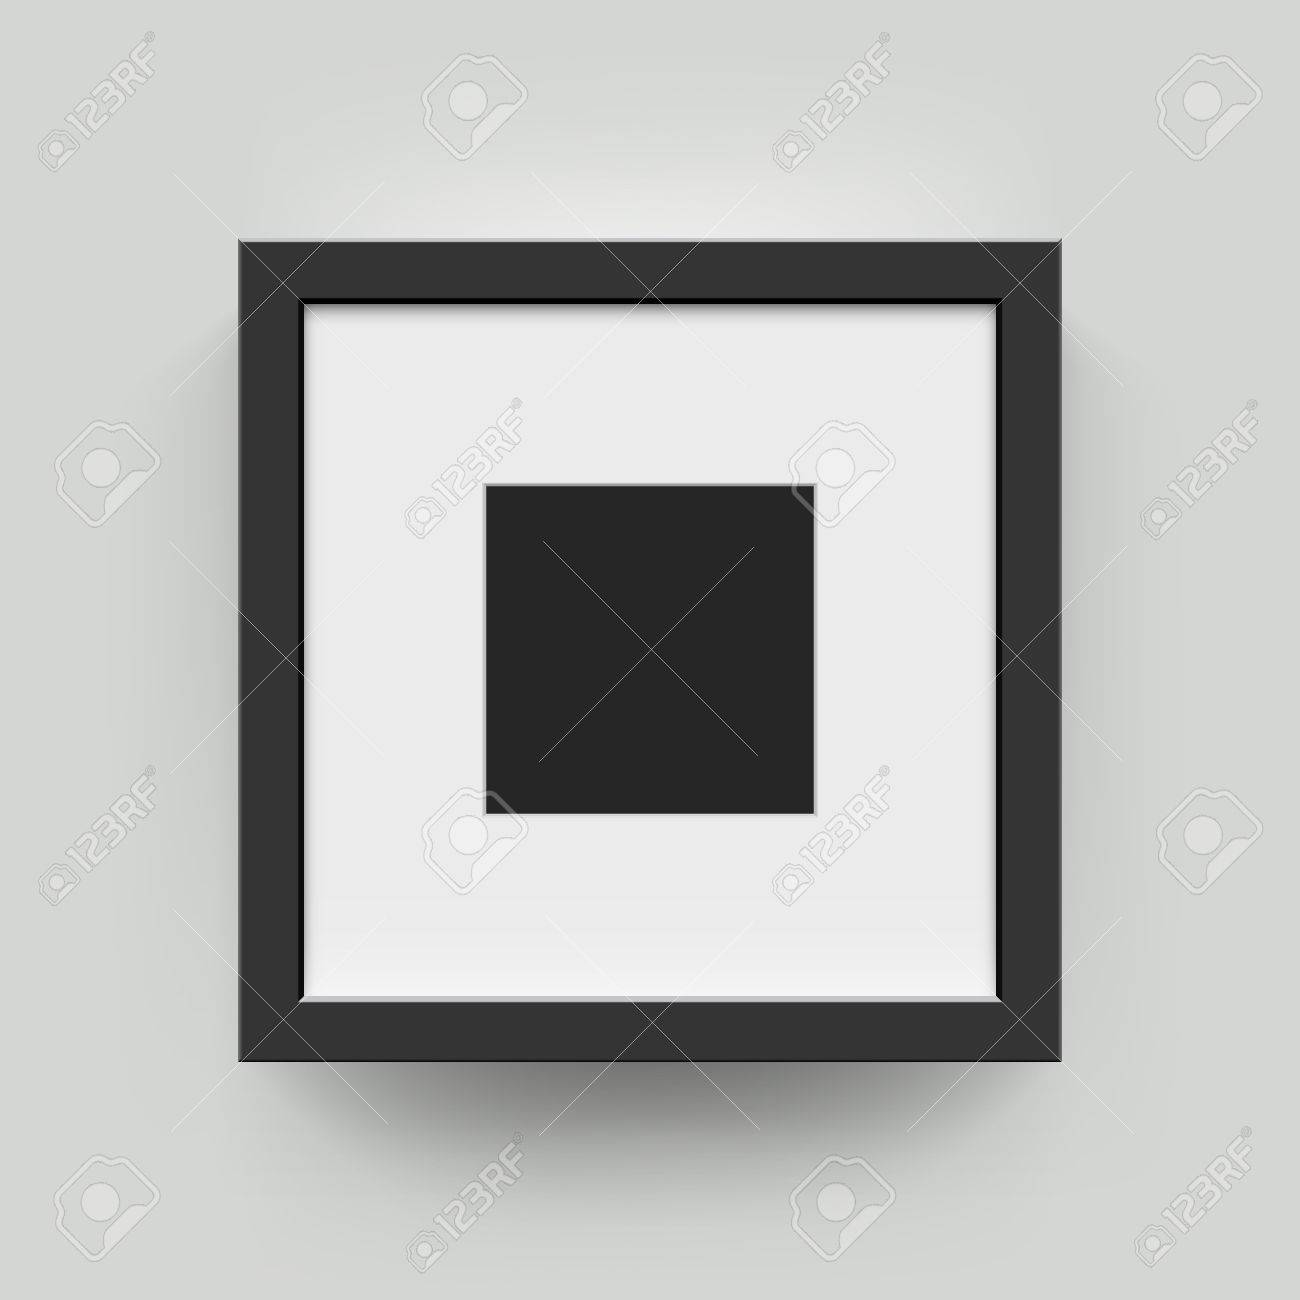 Square Blank Picture Frame For Photographs. Vector Realisitc ...